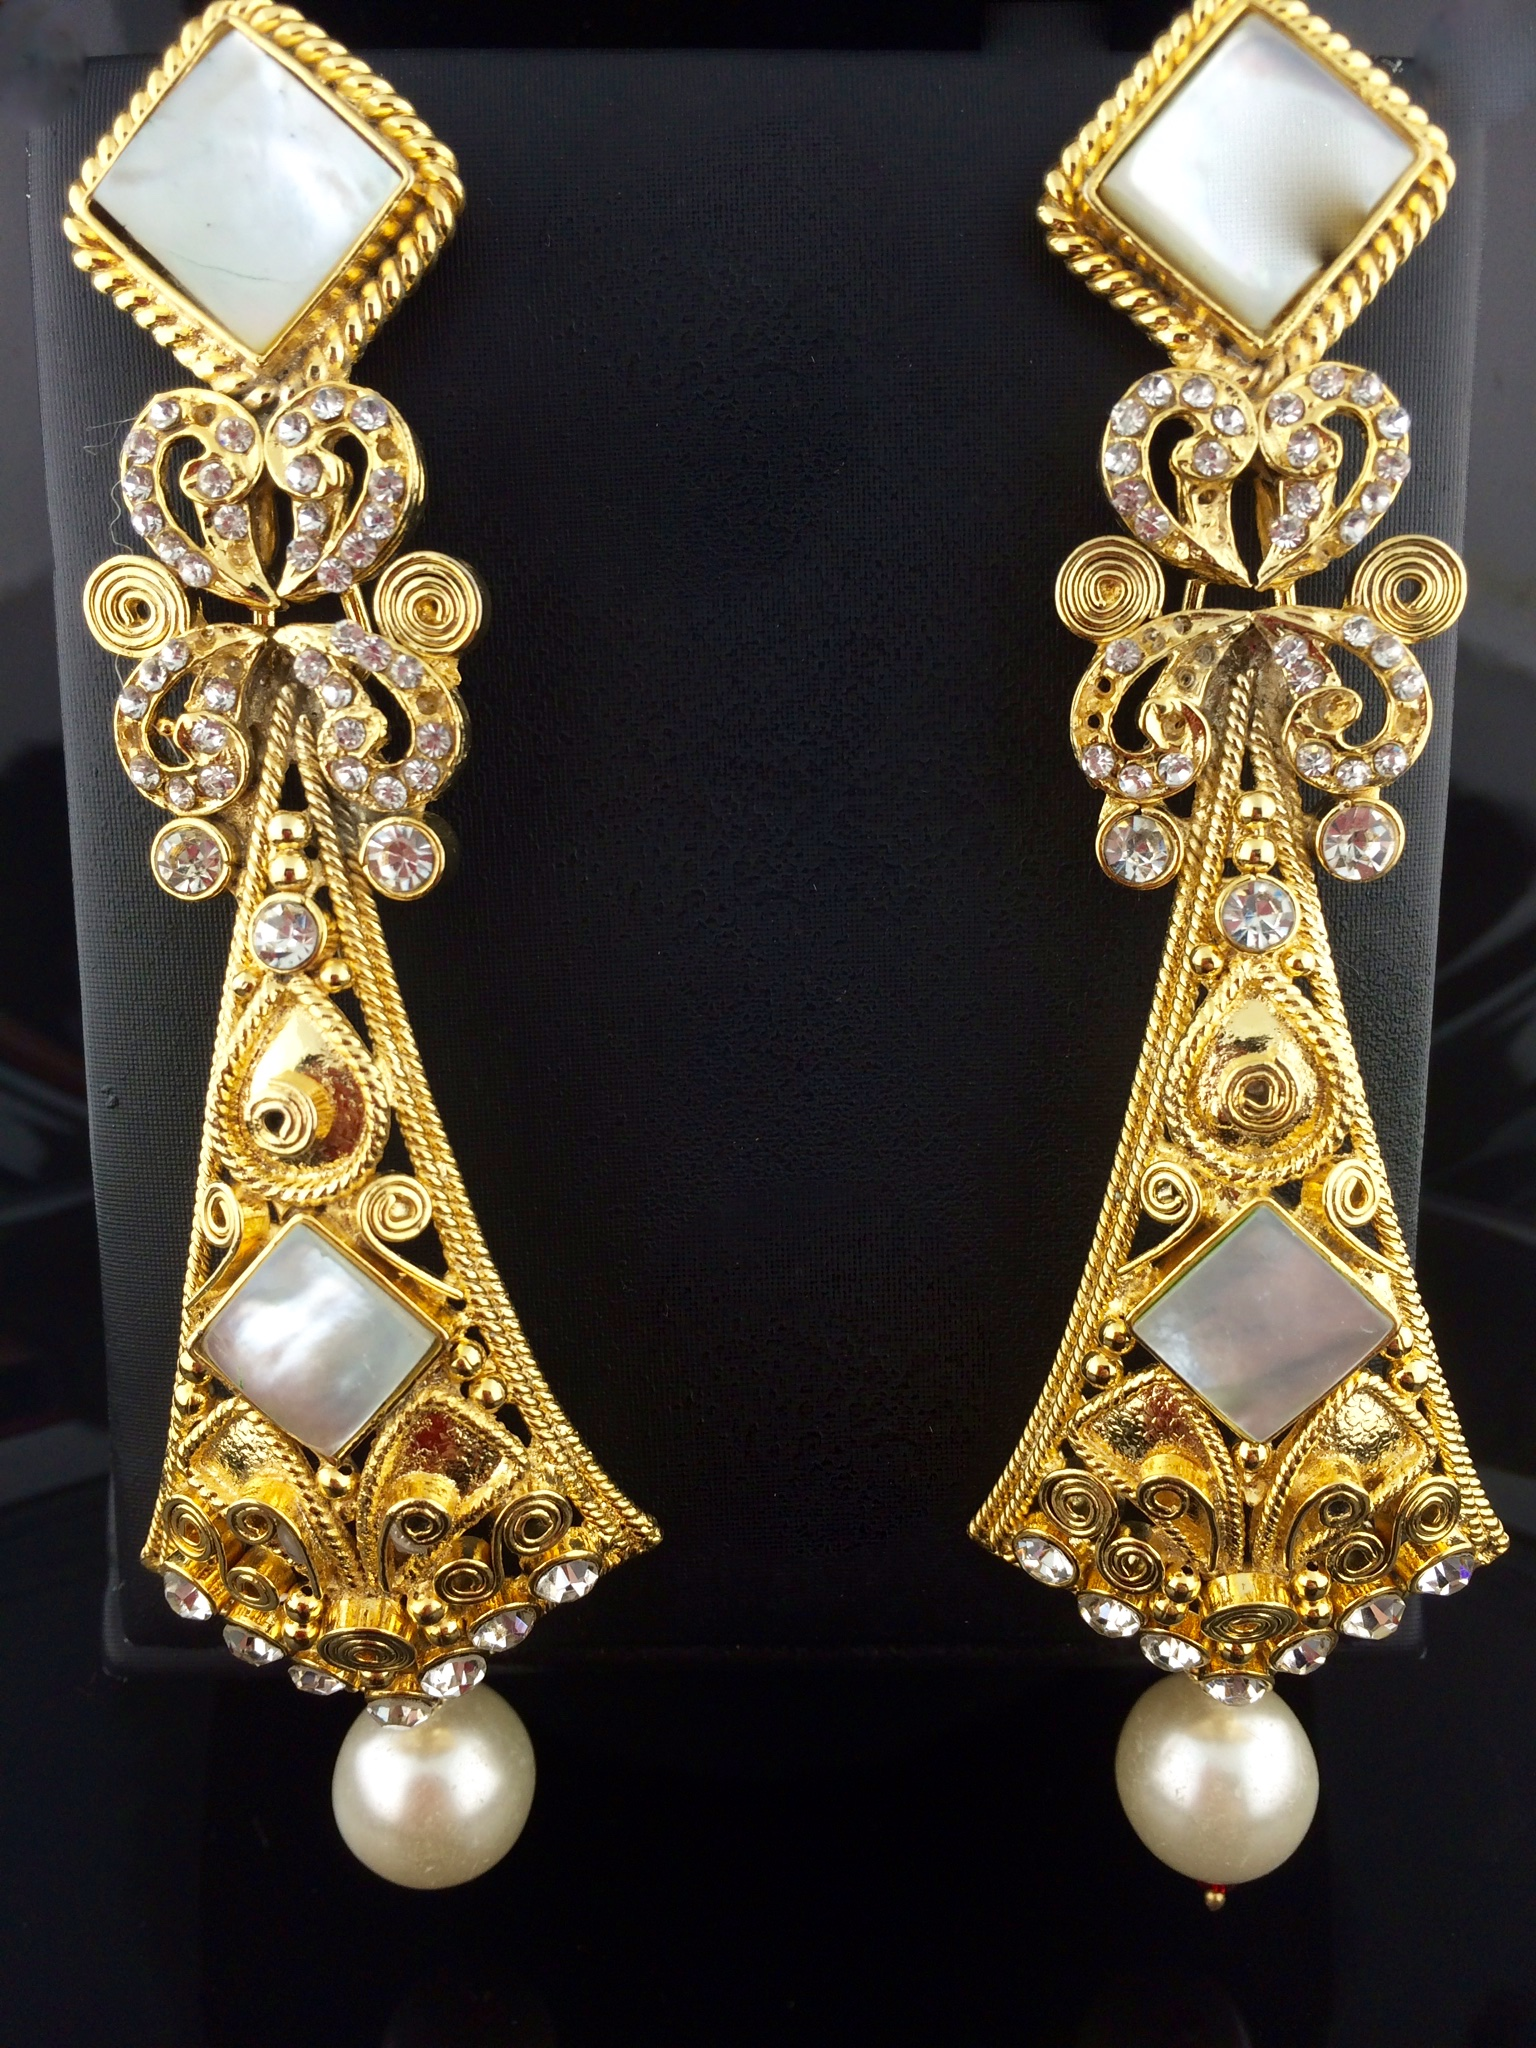 danglers zoom drop designs earrings designer mango long with designers er mokanc pearl buy online tassels